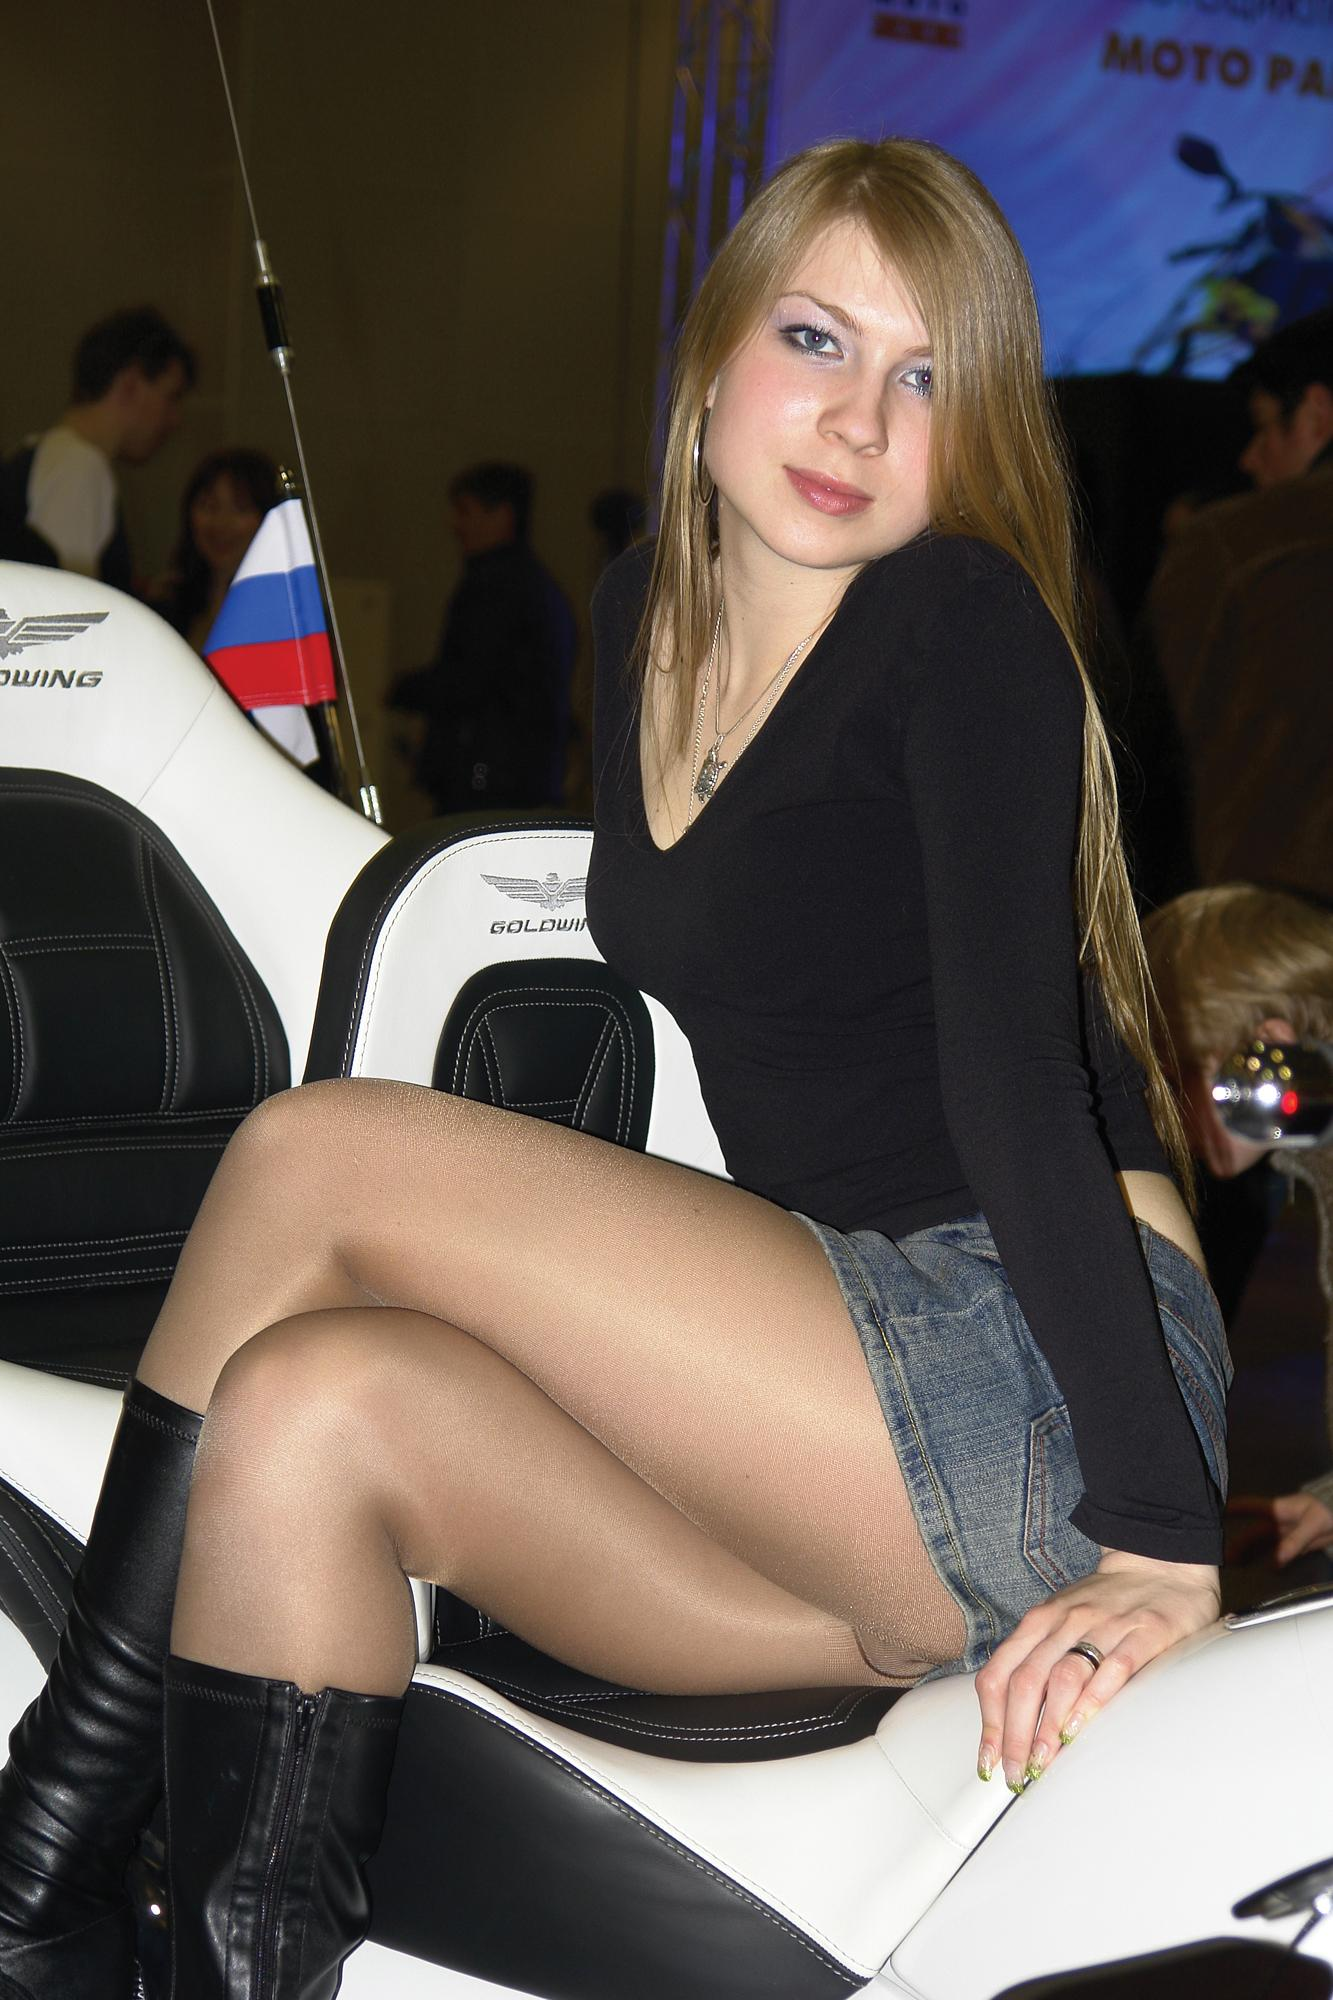 Consider, Pantyhose upskirt collection